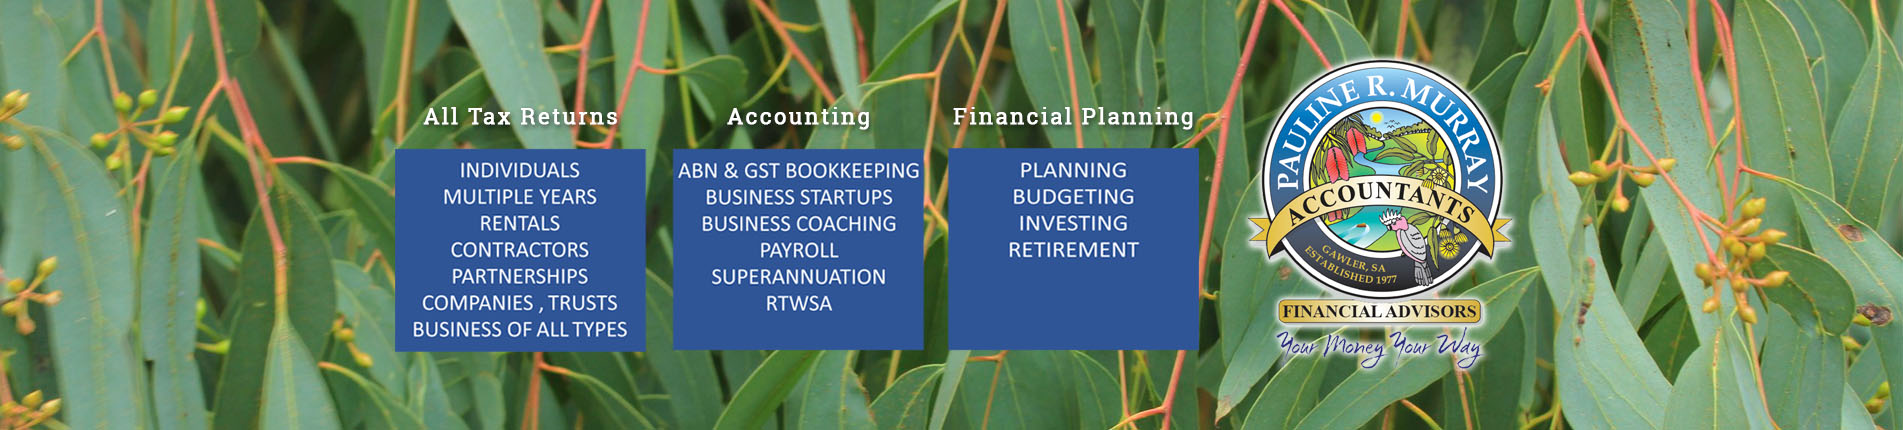 Pauline-R-Murray-Accountants-Financial-Planning-Gawler-Yorke-Peninsula-01